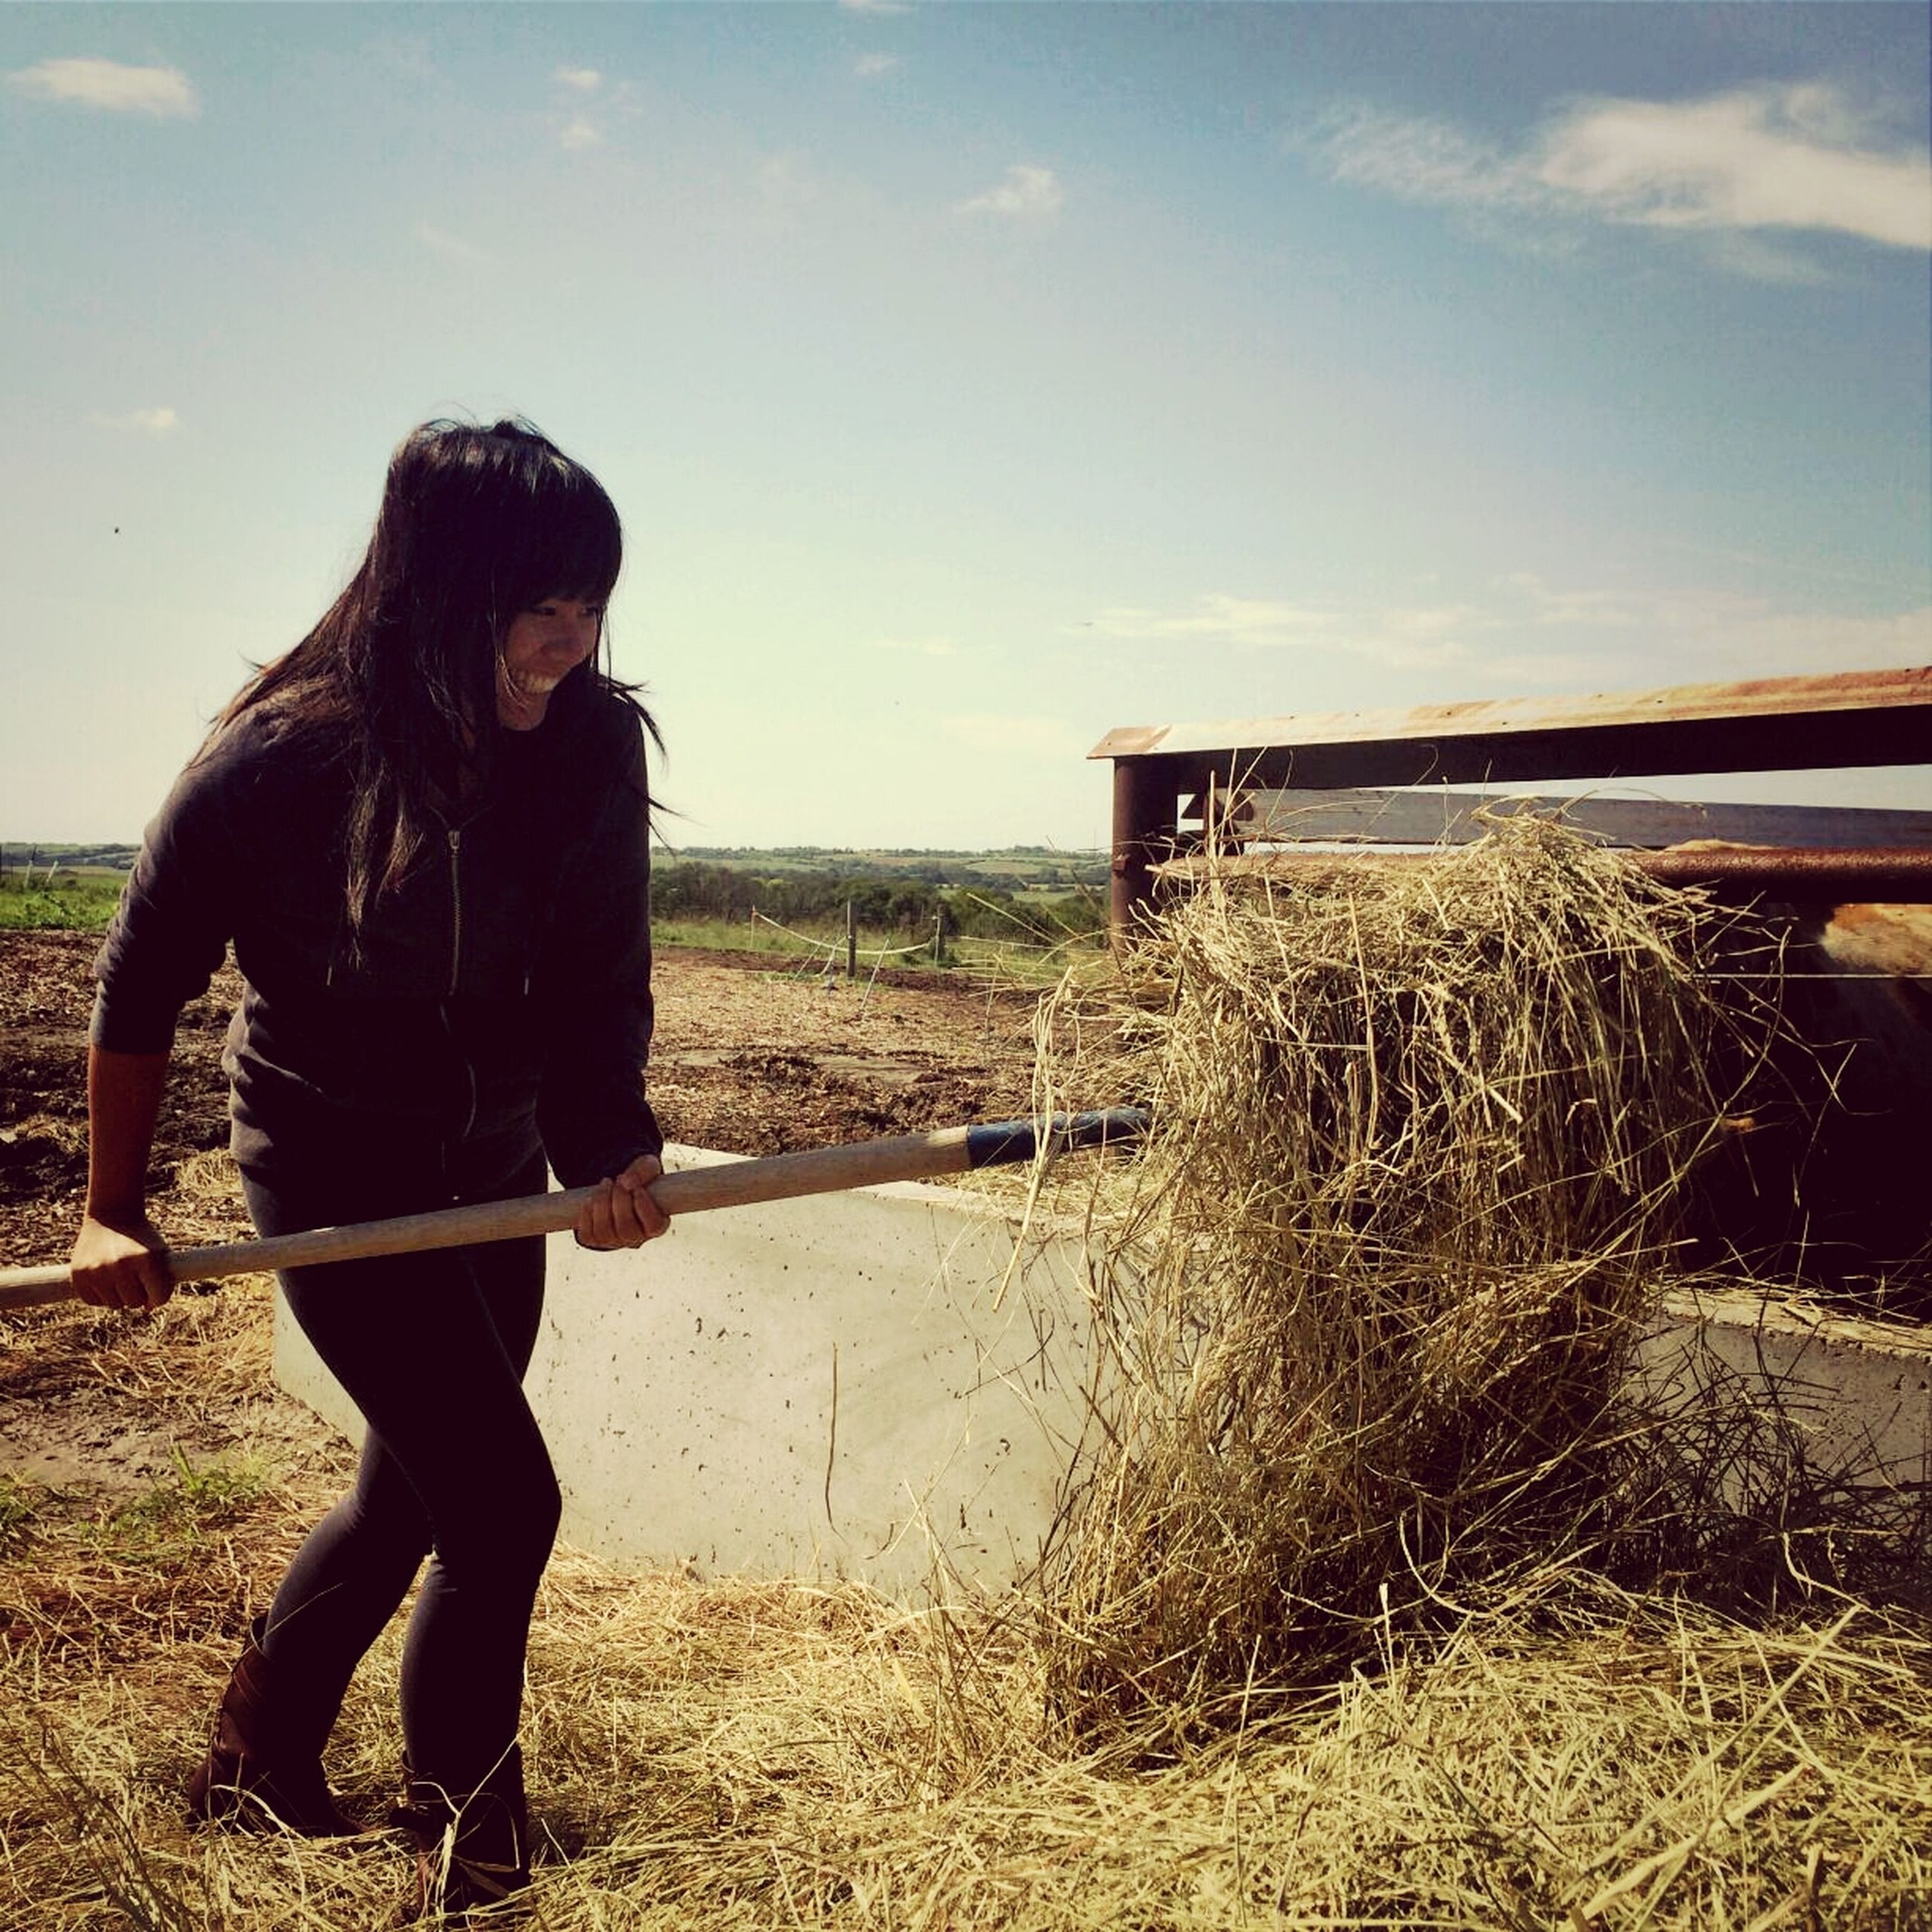 lifestyles, sky, standing, leisure activity, casual clothing, full length, field, young adult, young women, side view, person, landscape, rear view, three quarter length, long hair, outdoors, rural scene